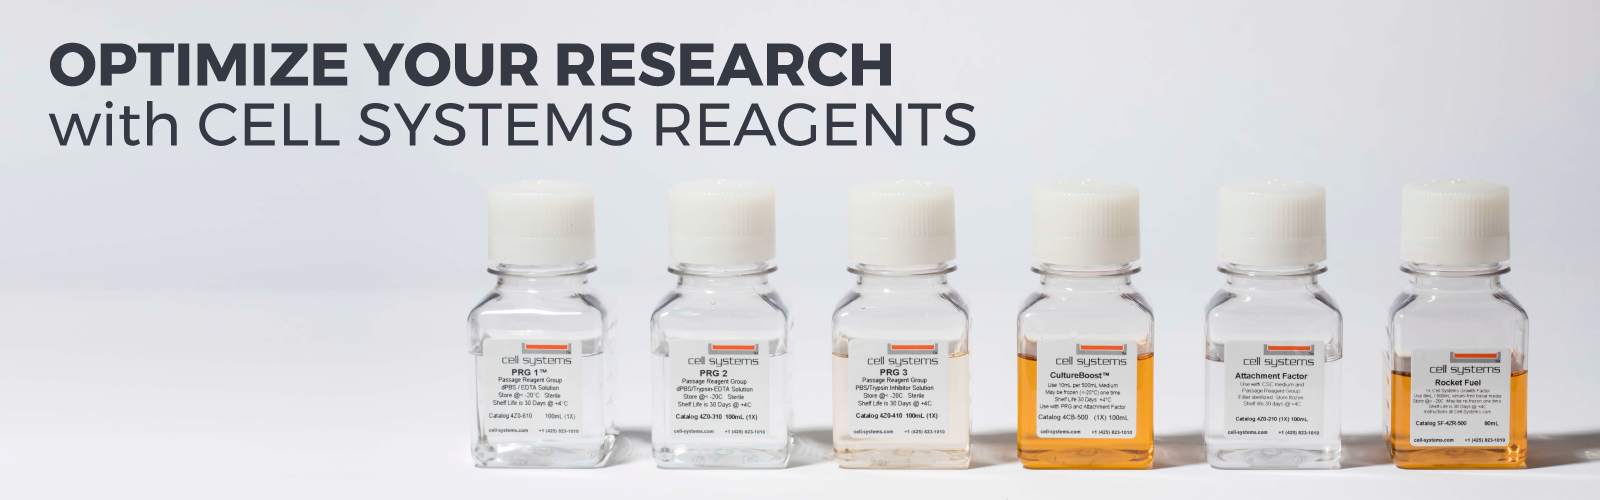 Optimize your research with CELL SYSTEMS REAGENTS